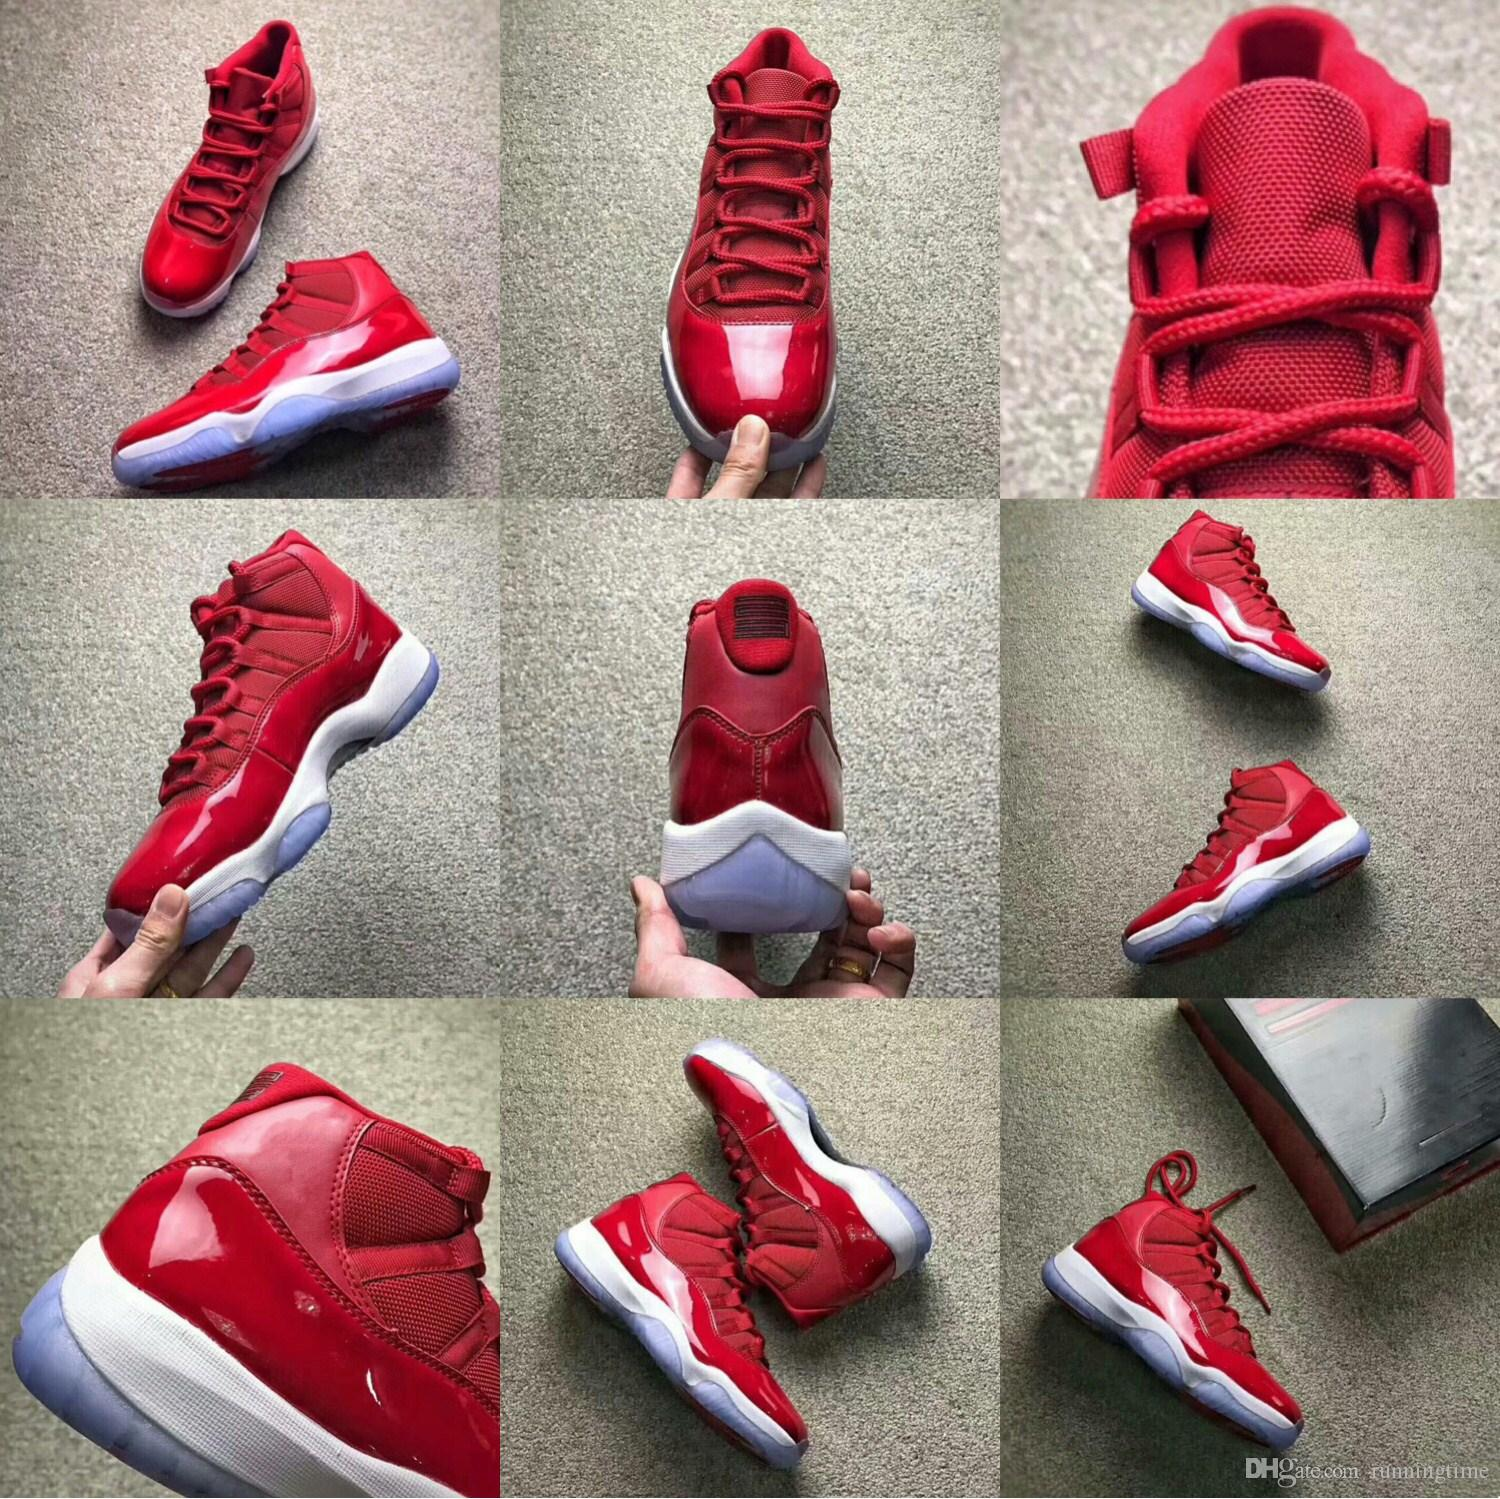 7495a50fd5698b With Box2018 Hot Basketball Shoes 11 Gym Red Chicago Women Men 11s Gym Red  White Athletic Sports Shoes Sneaker Women Shoes Men Shoes Gym Red Basketball  ...